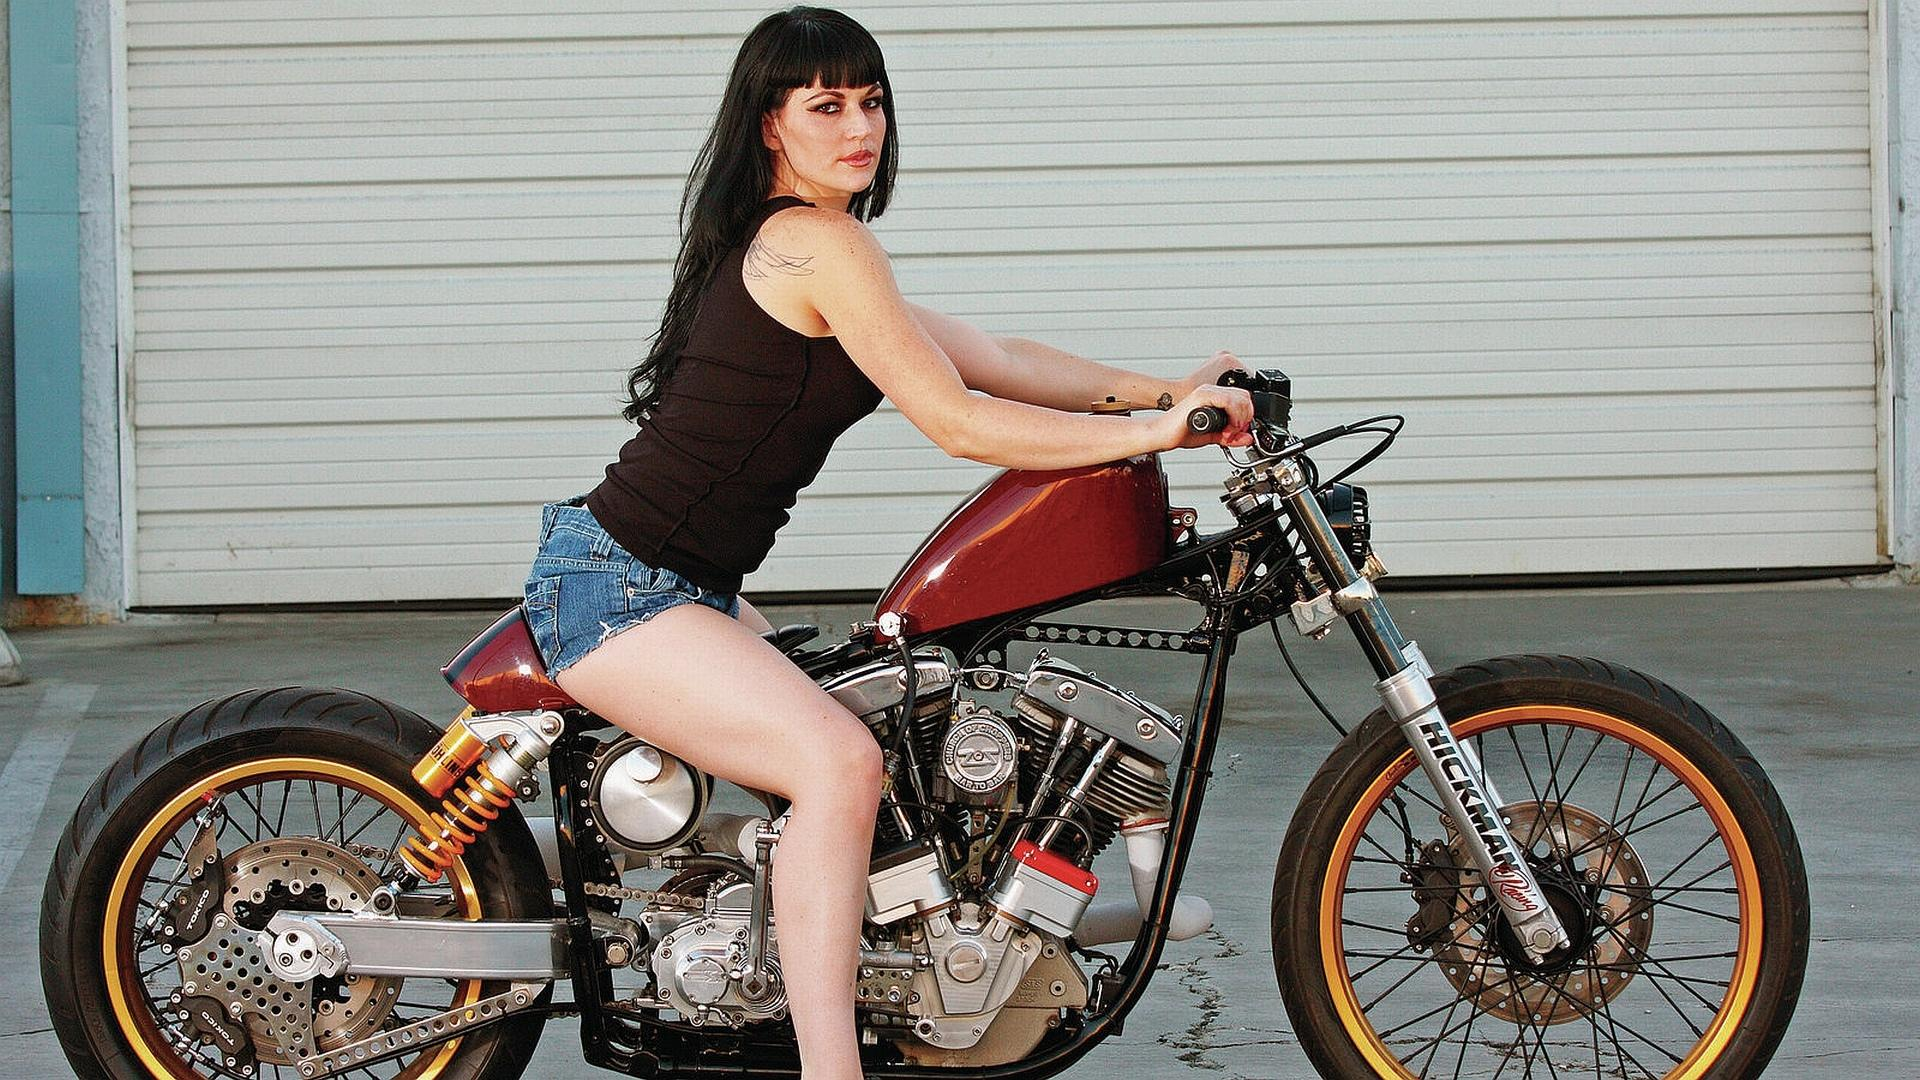 Girls and Motorcycles wallpapers HD quality